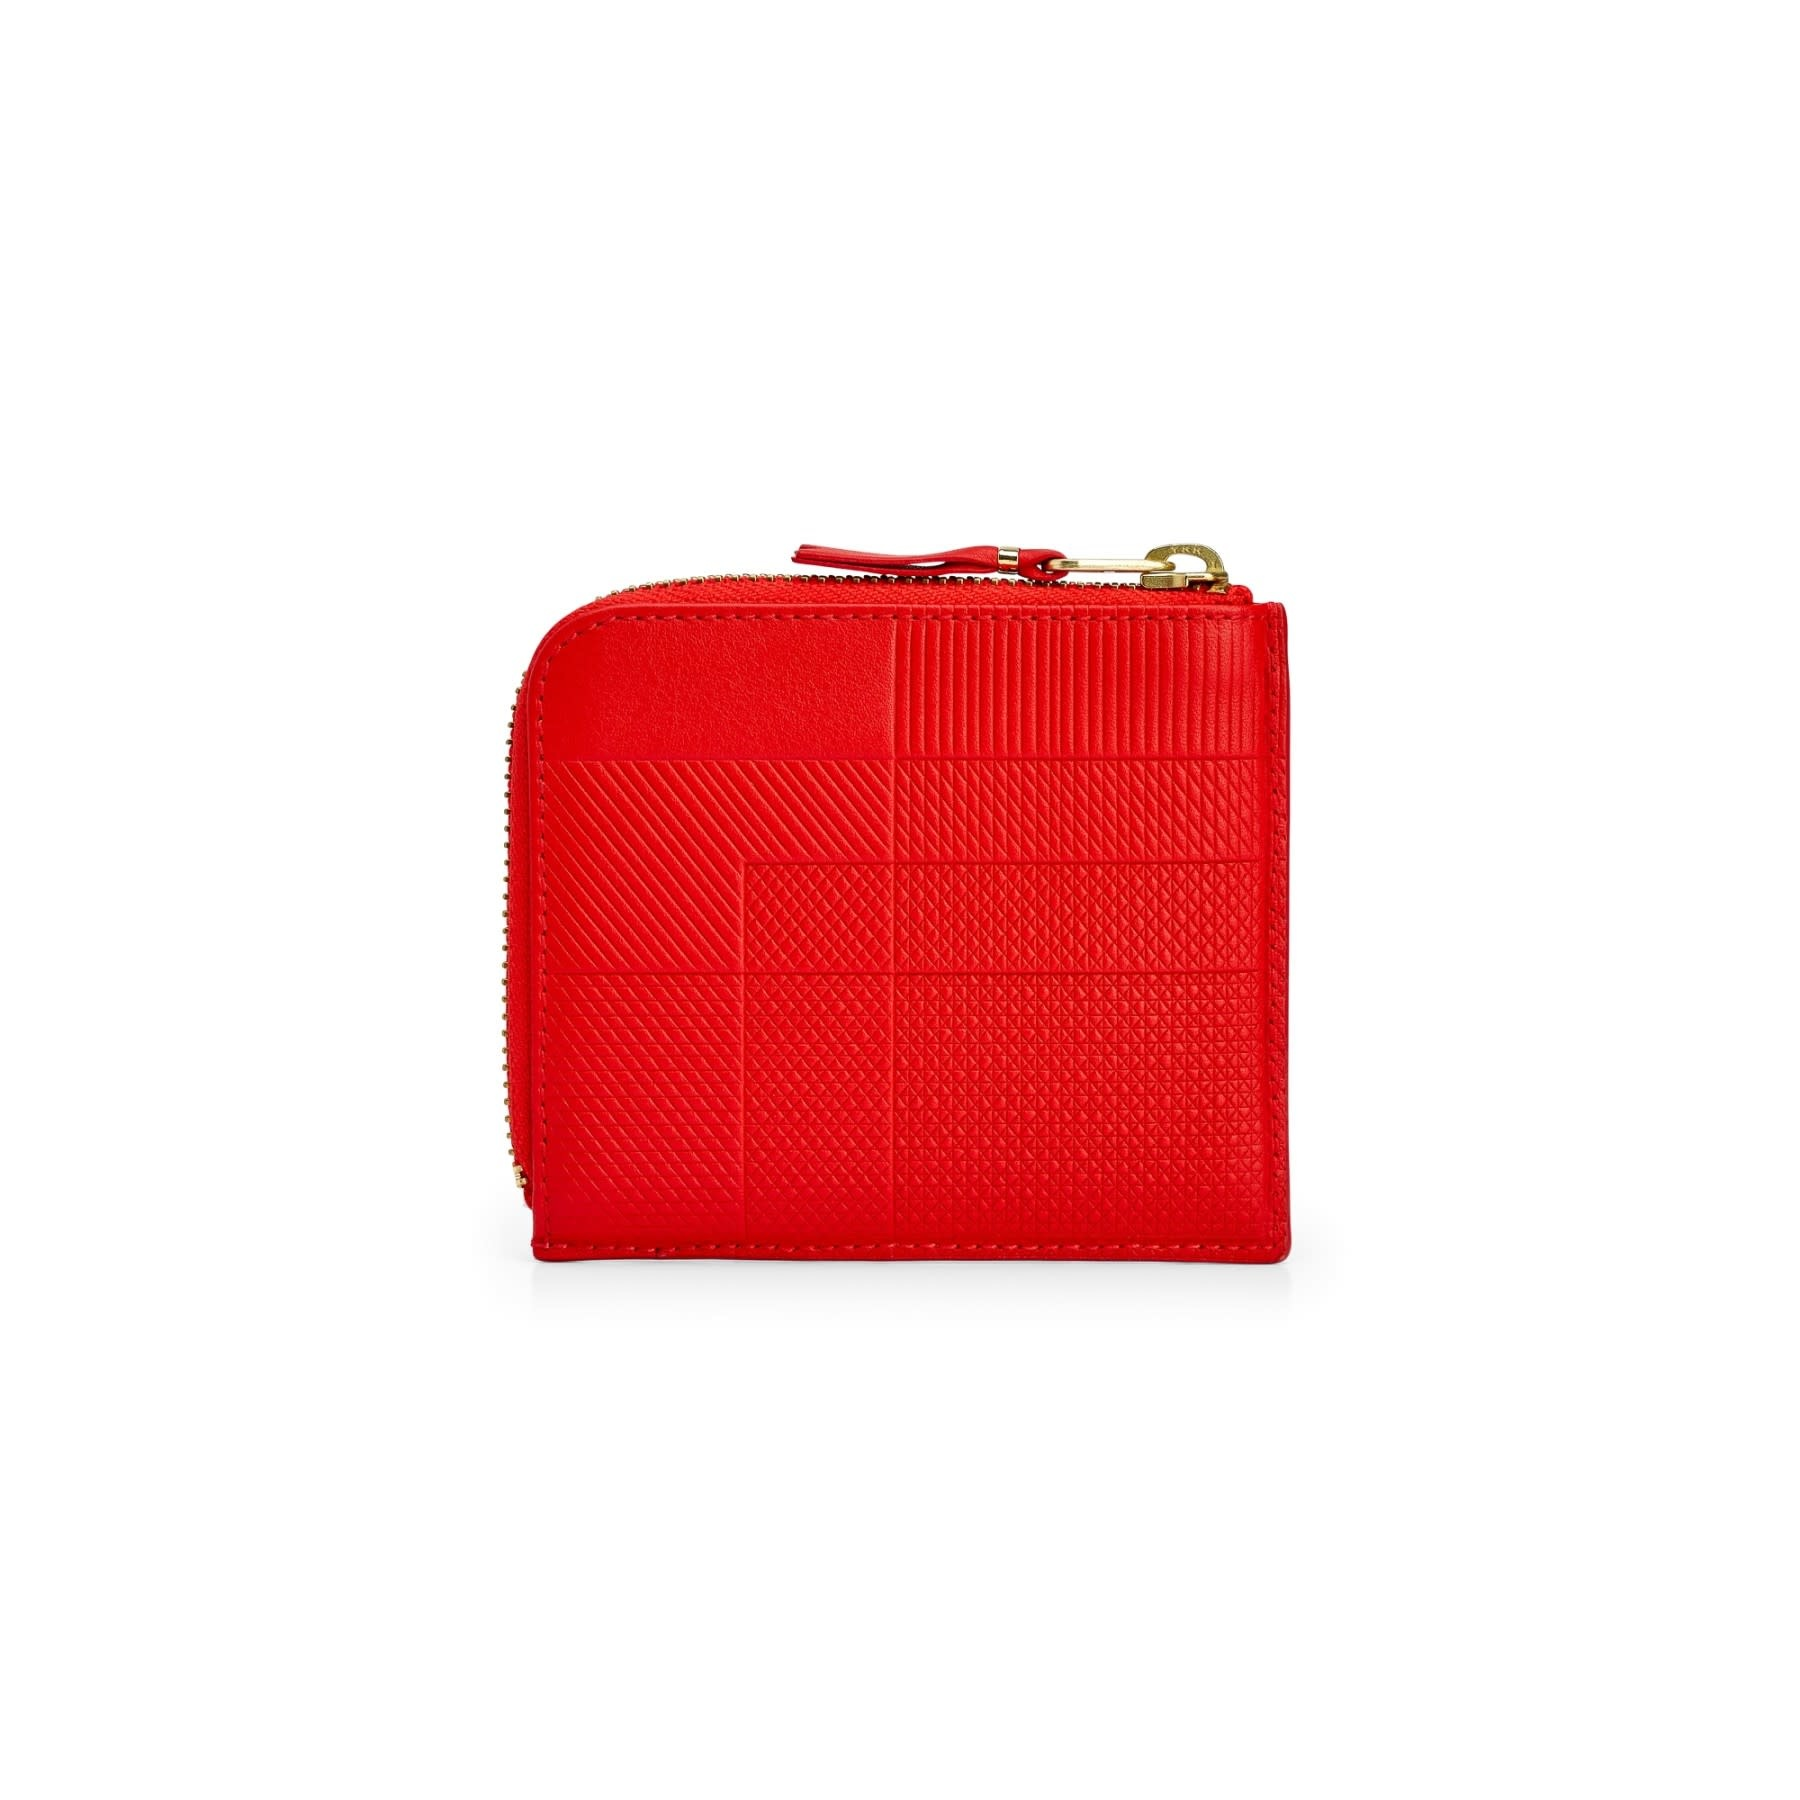 COMME des GARÇONS WALLET ntersection Lines 1/2 Zip Wallet Red SA3100LS